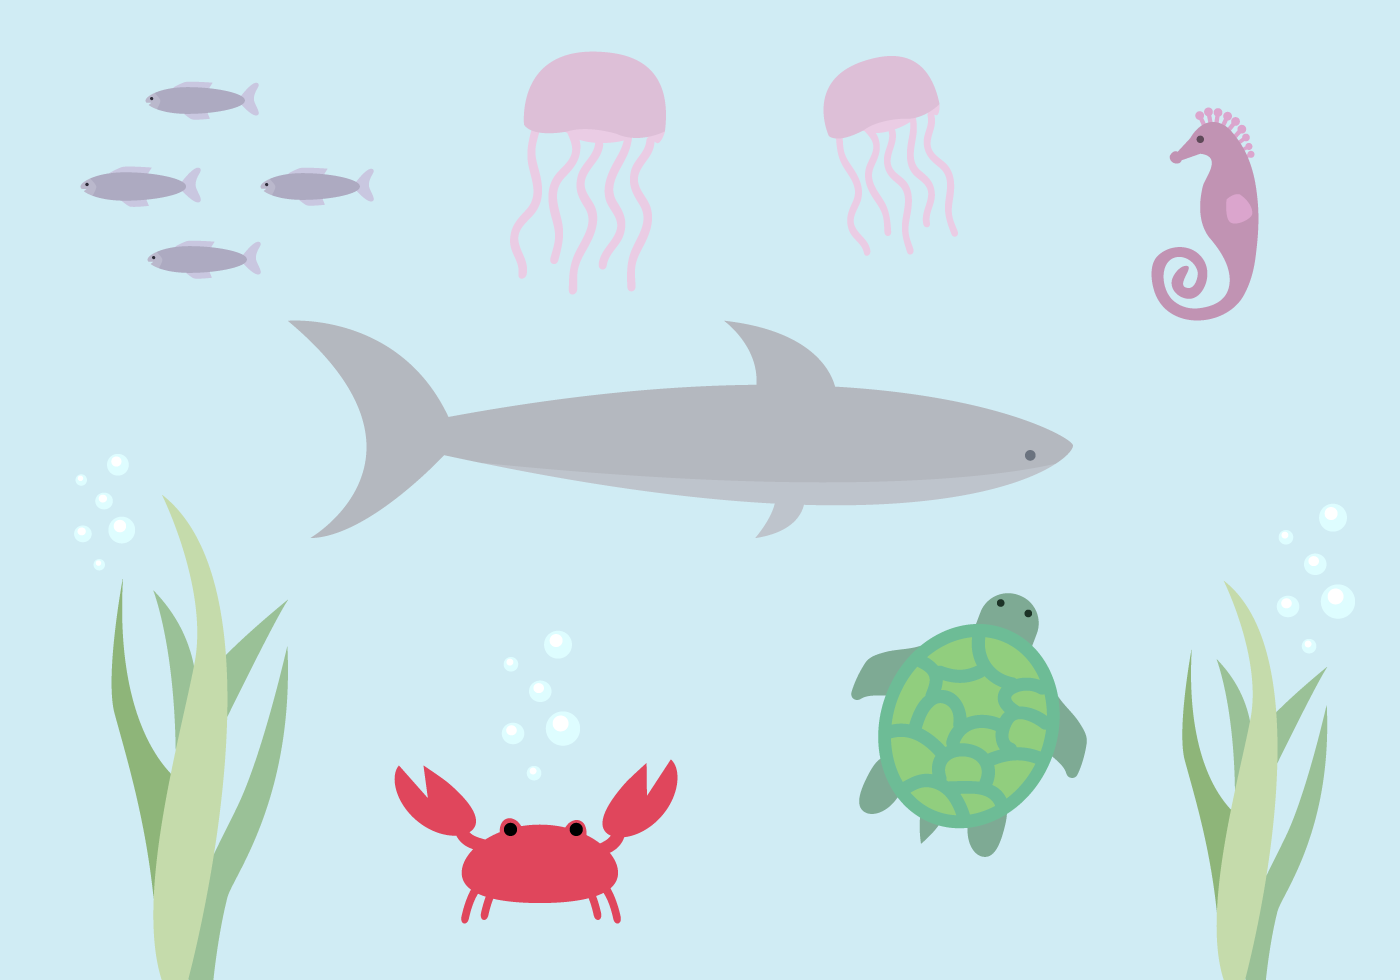 Aquatic Life Free Vector Art - (5,251 Free Downloads)